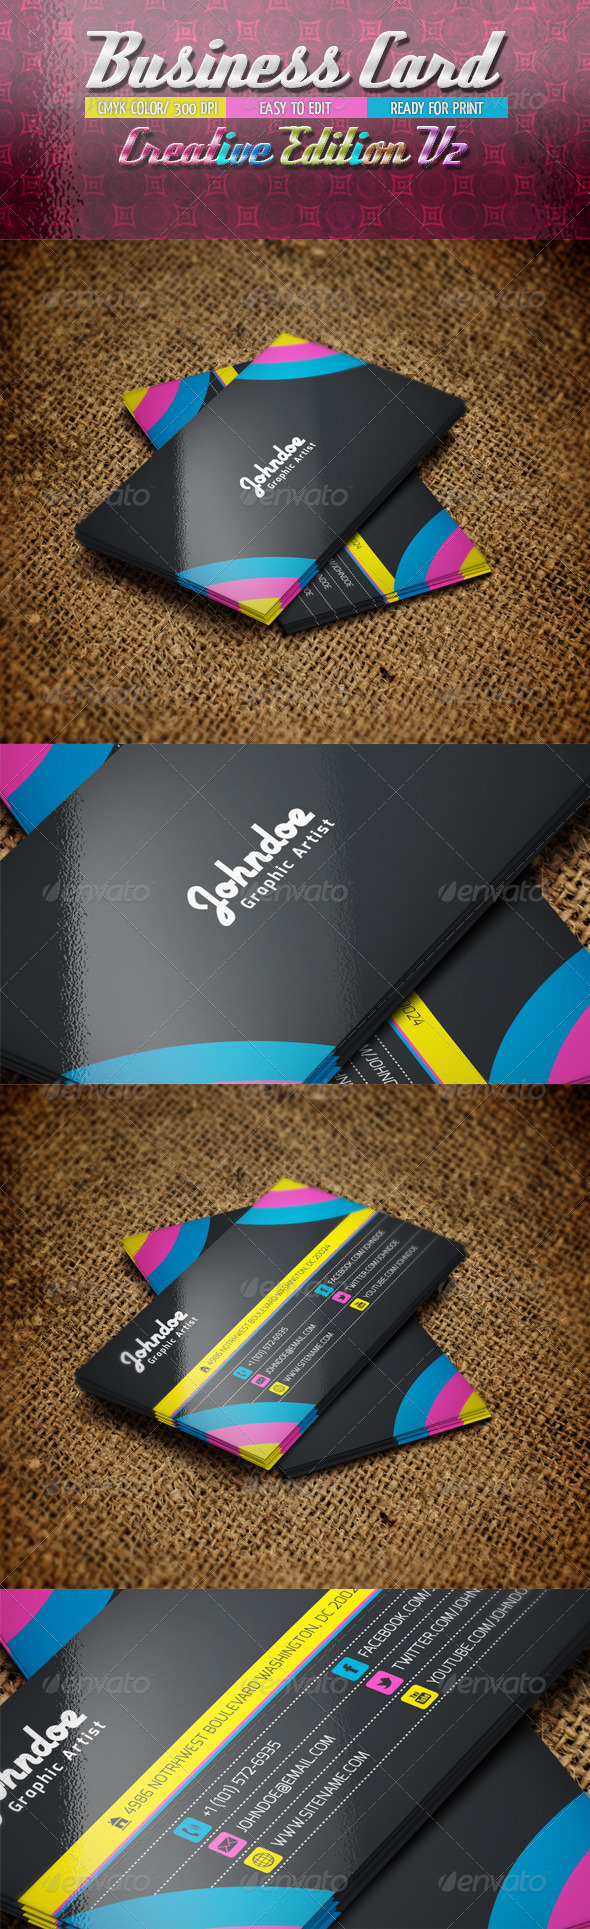 GraphicRiver Business Card Creative Edition V2 4803641